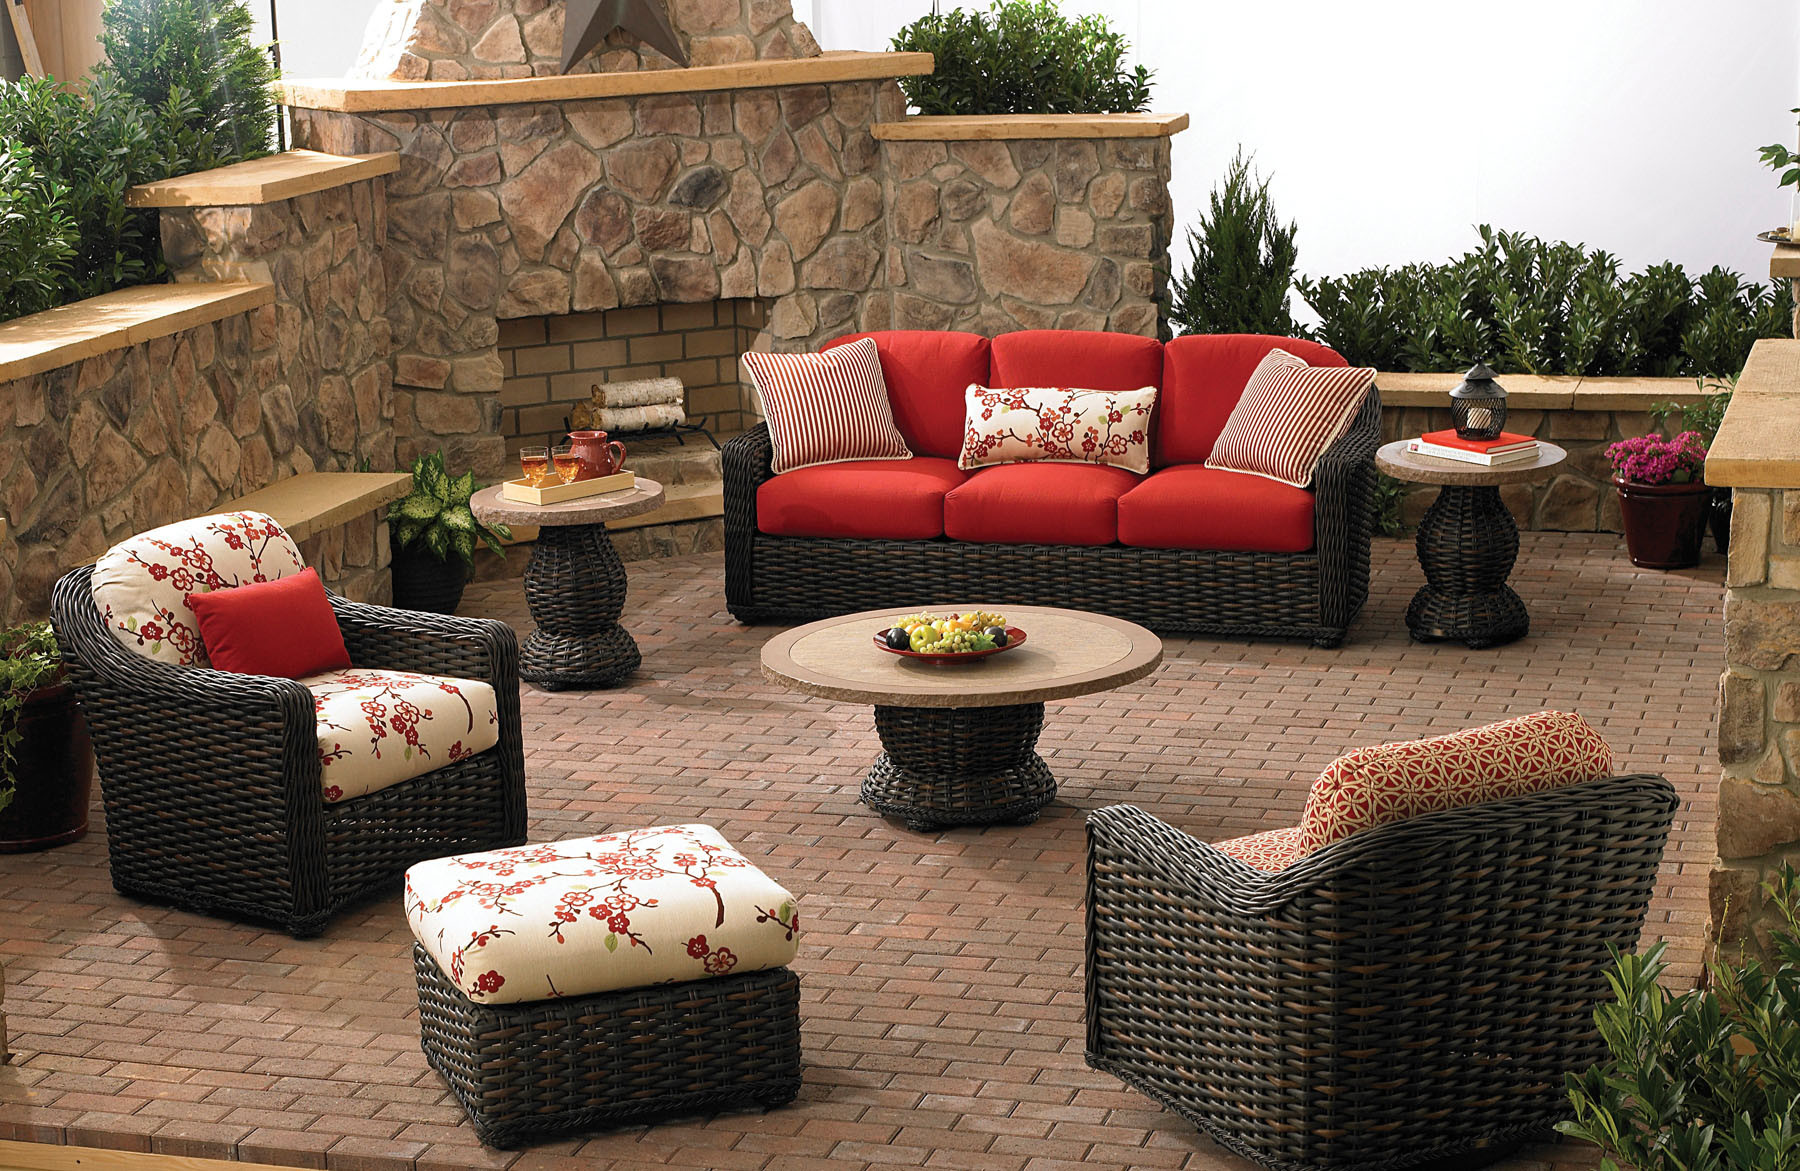 Best ideas about At Home Patio Furniture . Save or Pin Outdoor Furniture & Patio Furniture Sets in Carefree AZ Now.